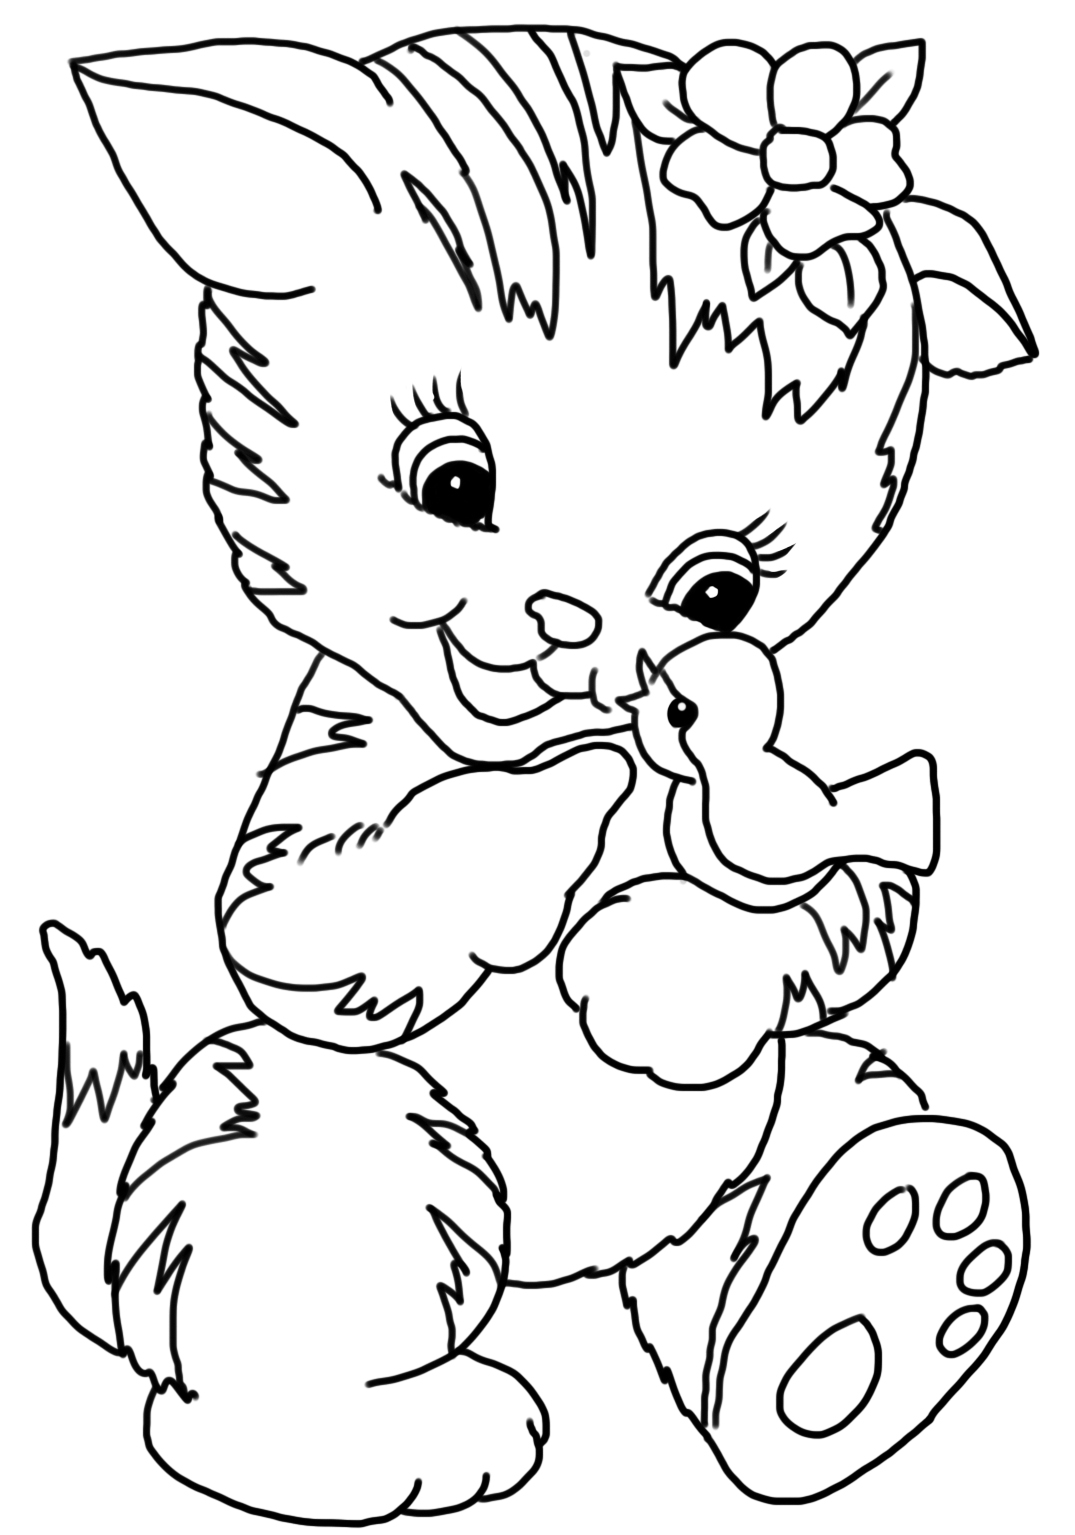 kitten color page kitten coloring pages color kitten page